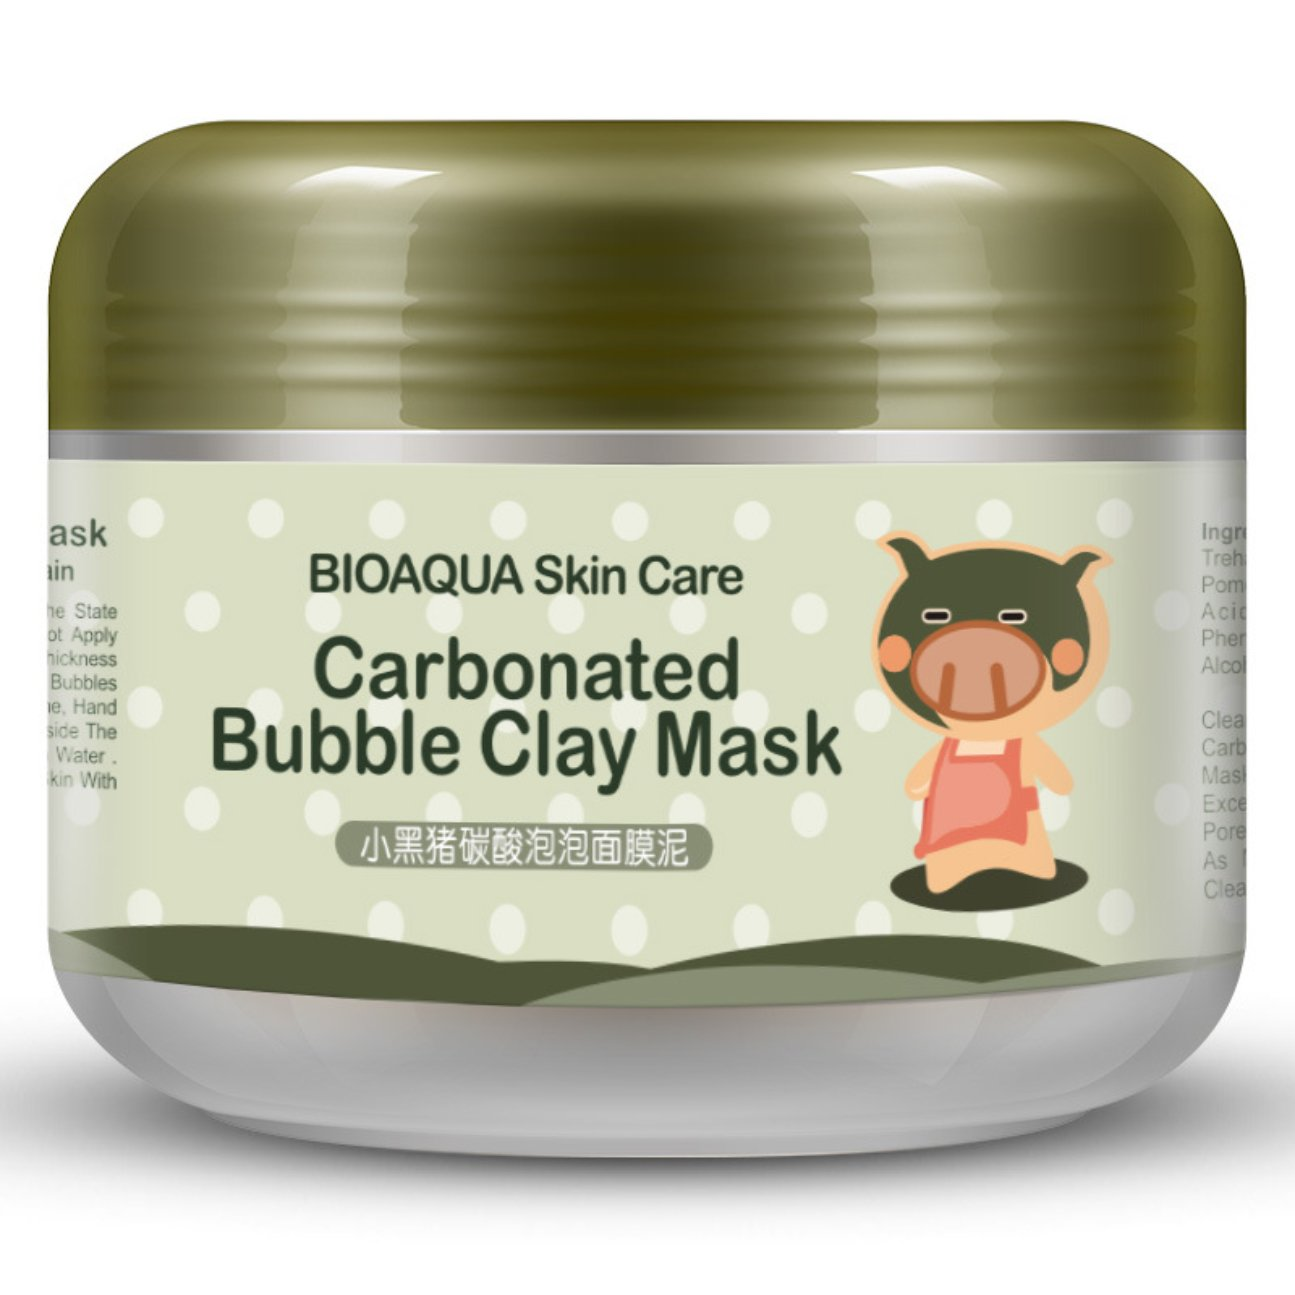 BIOAQUA Carbonated Bubble Clay Piggy Mask Clear Rejuvenation Skin Deep Plant Extracts Cleanse Nourishment Abundant Foam